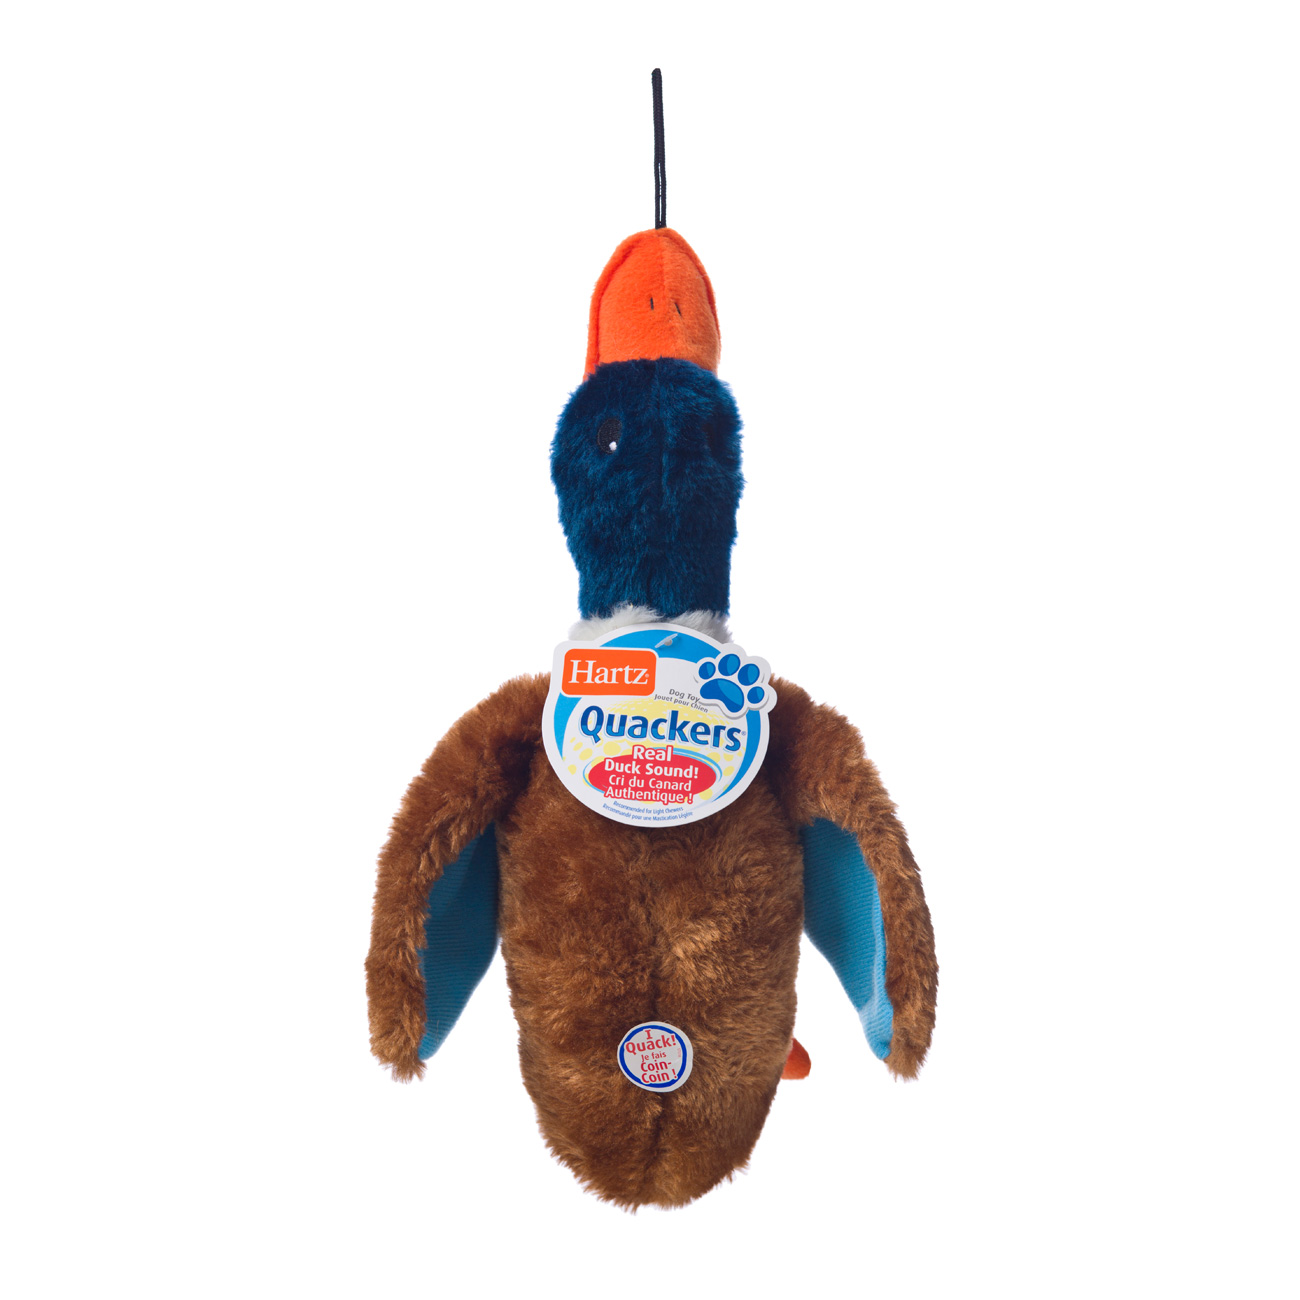 Blue duck shaped squeaky toy for dogs, Hartz SKU 3270005445